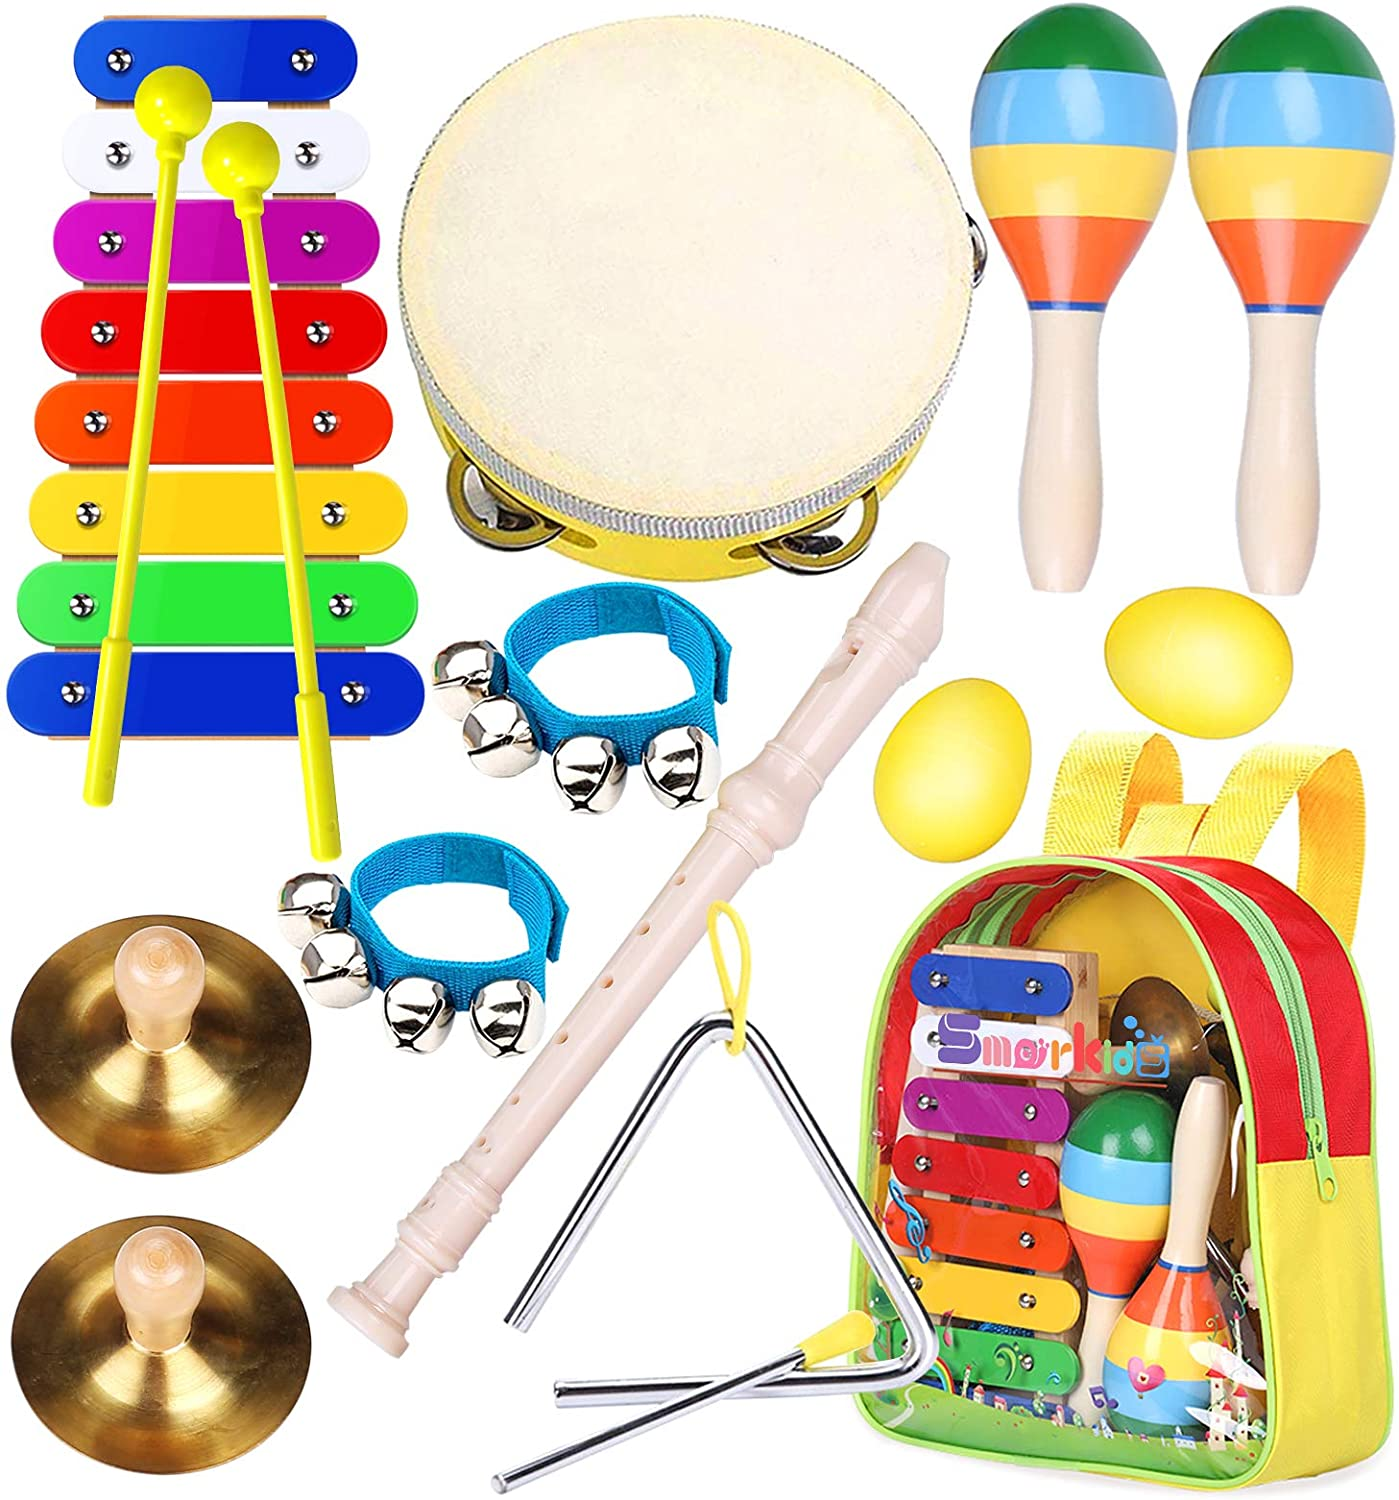 Toddler Musical Instruments Toys- Smarkids Premium Accurately Tuned Percussion Musical Instruments for Kids Children Educational Toy Set for Boys& Girls with Xylophone Flute Tambourine Maraca Backpack : Toys & Games